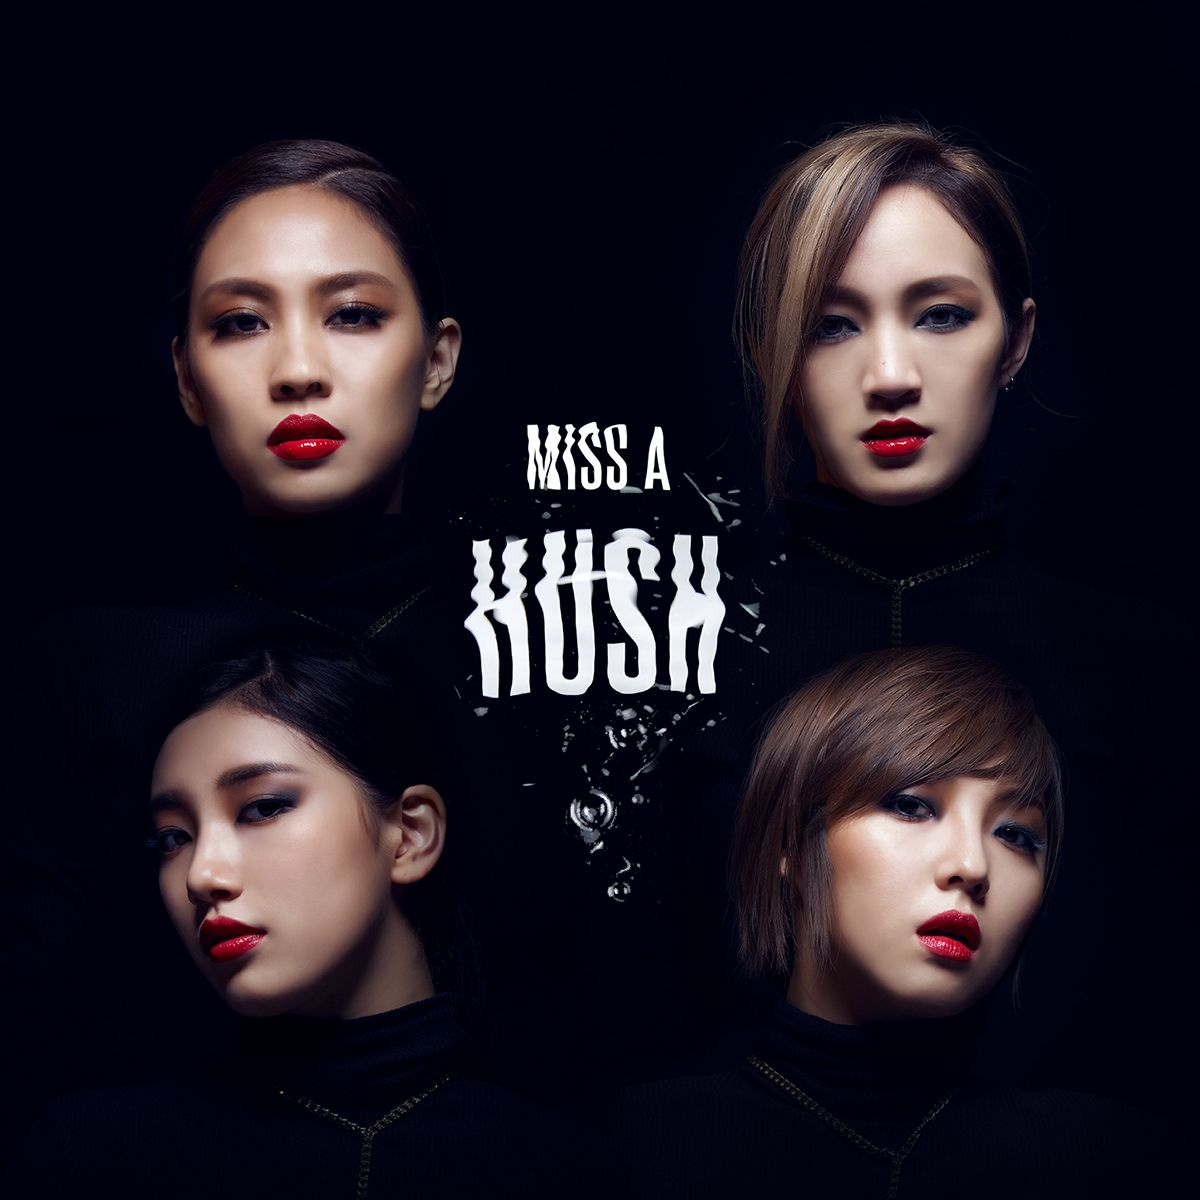 [Album] Miss A - Hush [VOL. 2]